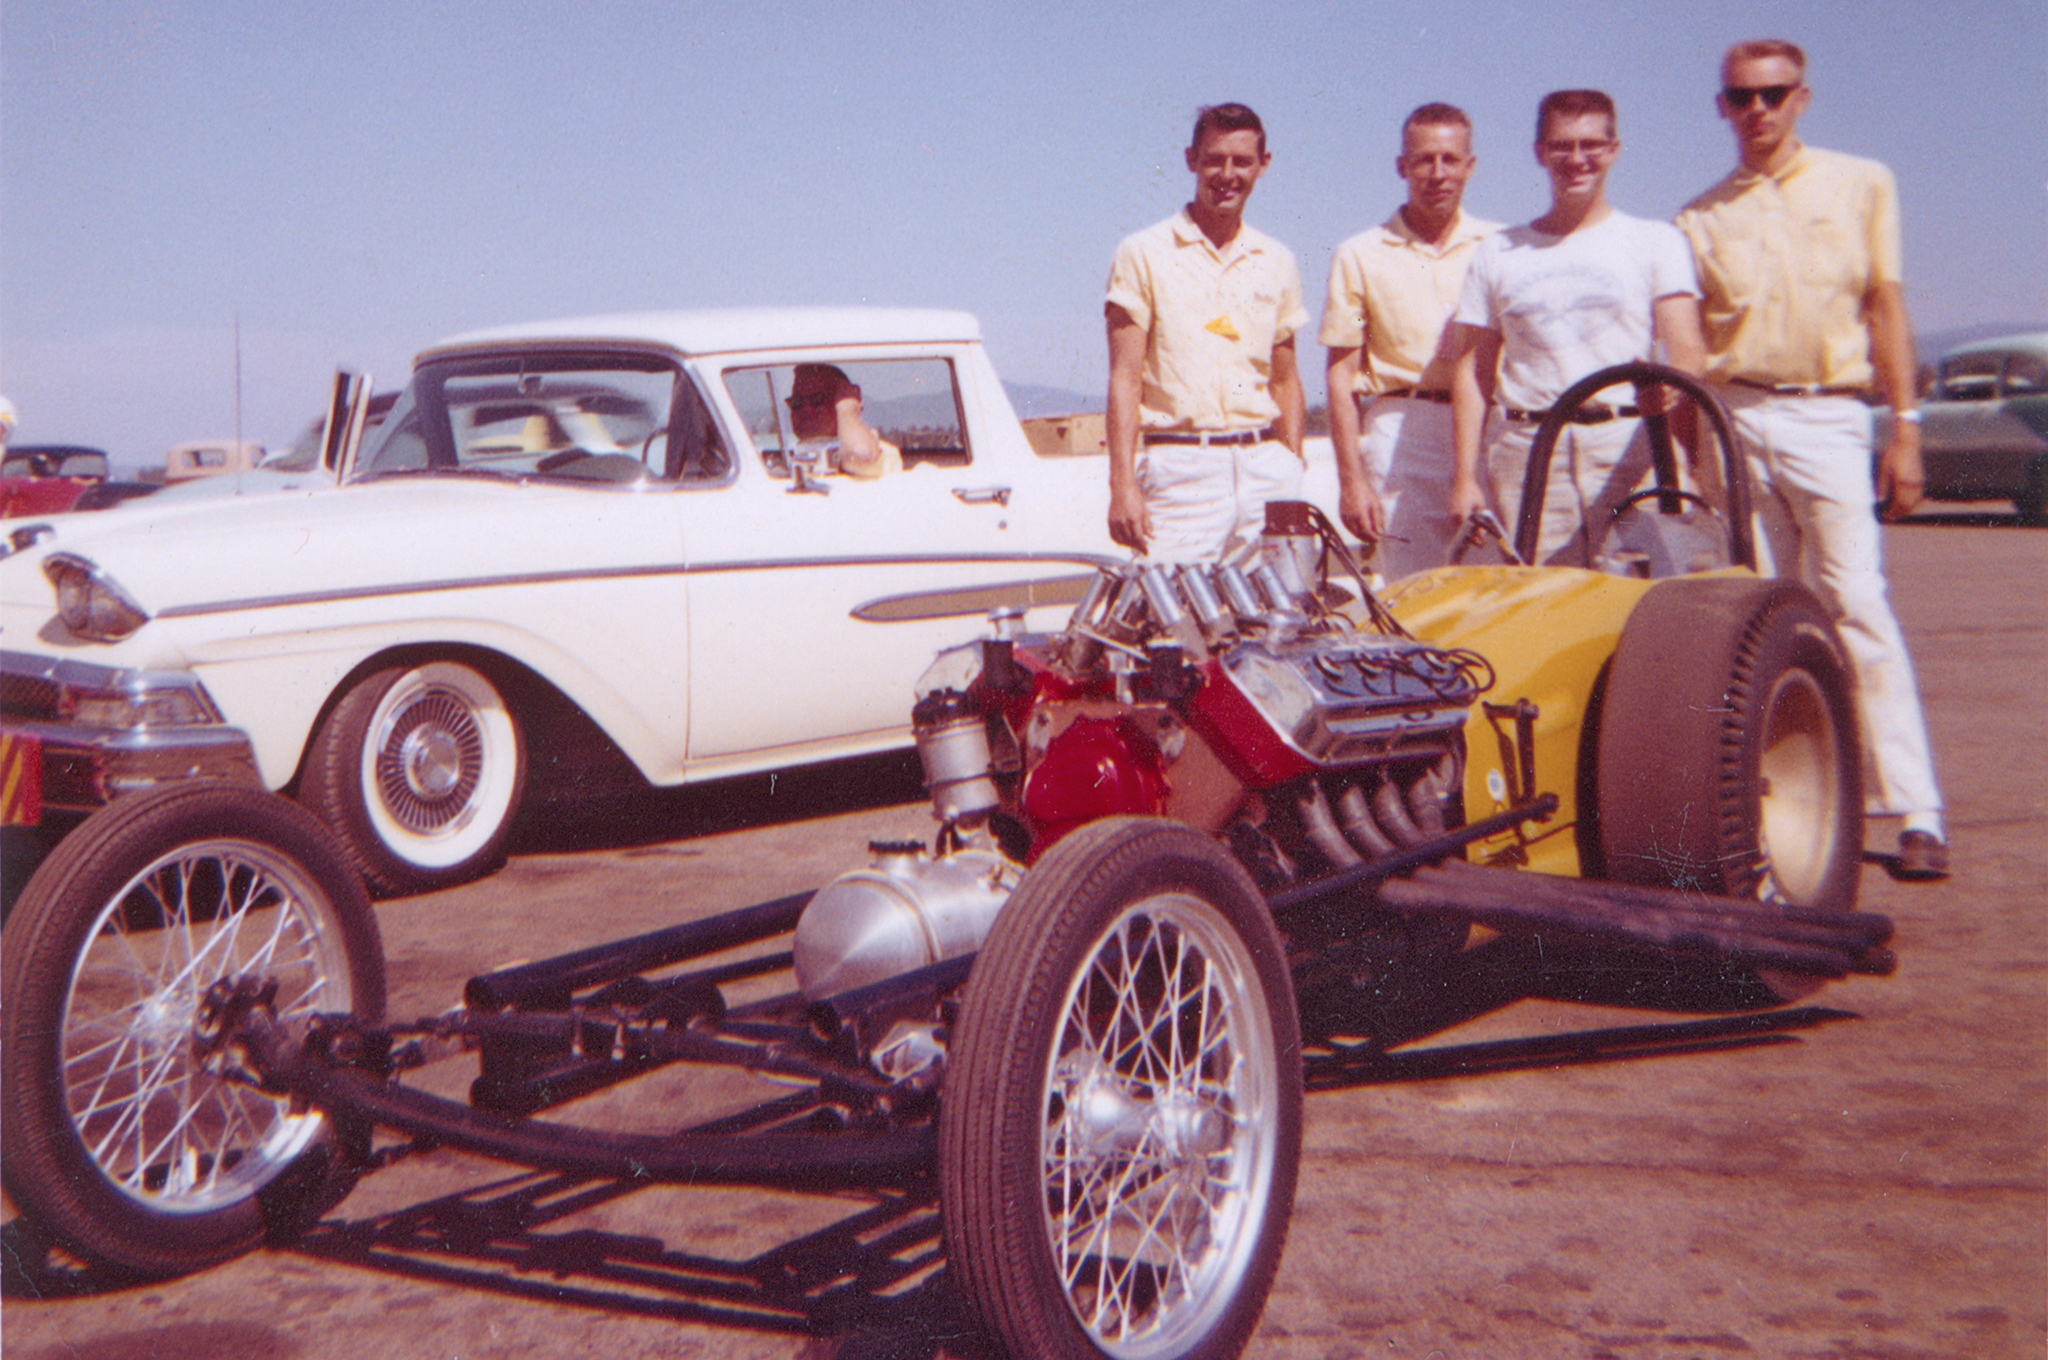 Don Stortroen built the Thrifty dragster as a conventionally long car by 1959 standards. Initially, it ran an injected 392, but got the supercharger not long after this Deer Park image. From left to right, that's Warsinski in the Ranchero, crewmember and first Thrifty driver Bob Miller, Thrifty Auto Supply owner Hank Clay, engine builder Dick Flynn, and driver Don Stortroen.